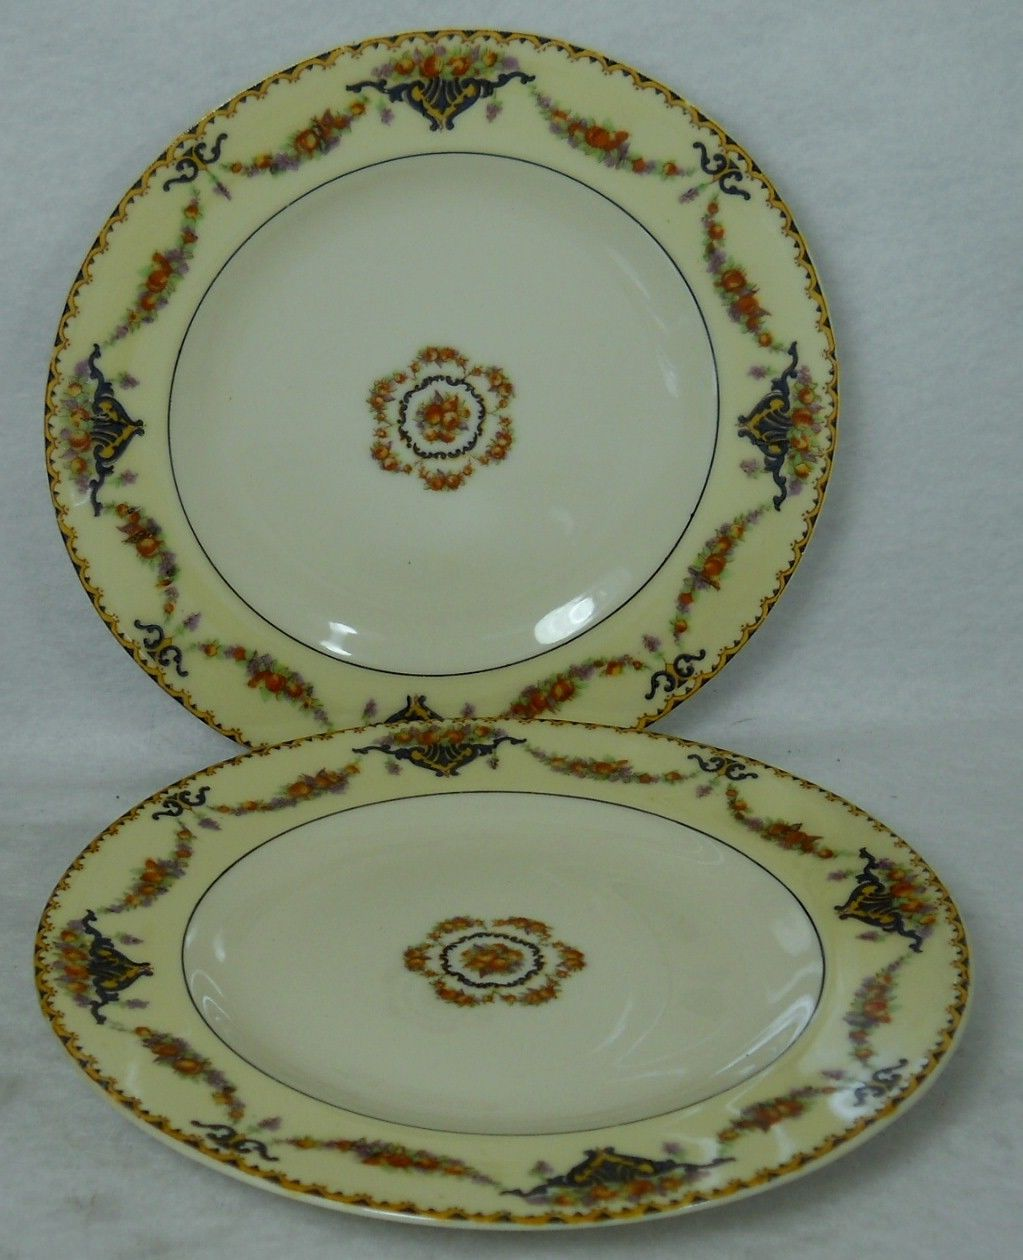 HAVILAND china France POMONA pattern Bread Plate - Set of Two (2) - 6-3/8